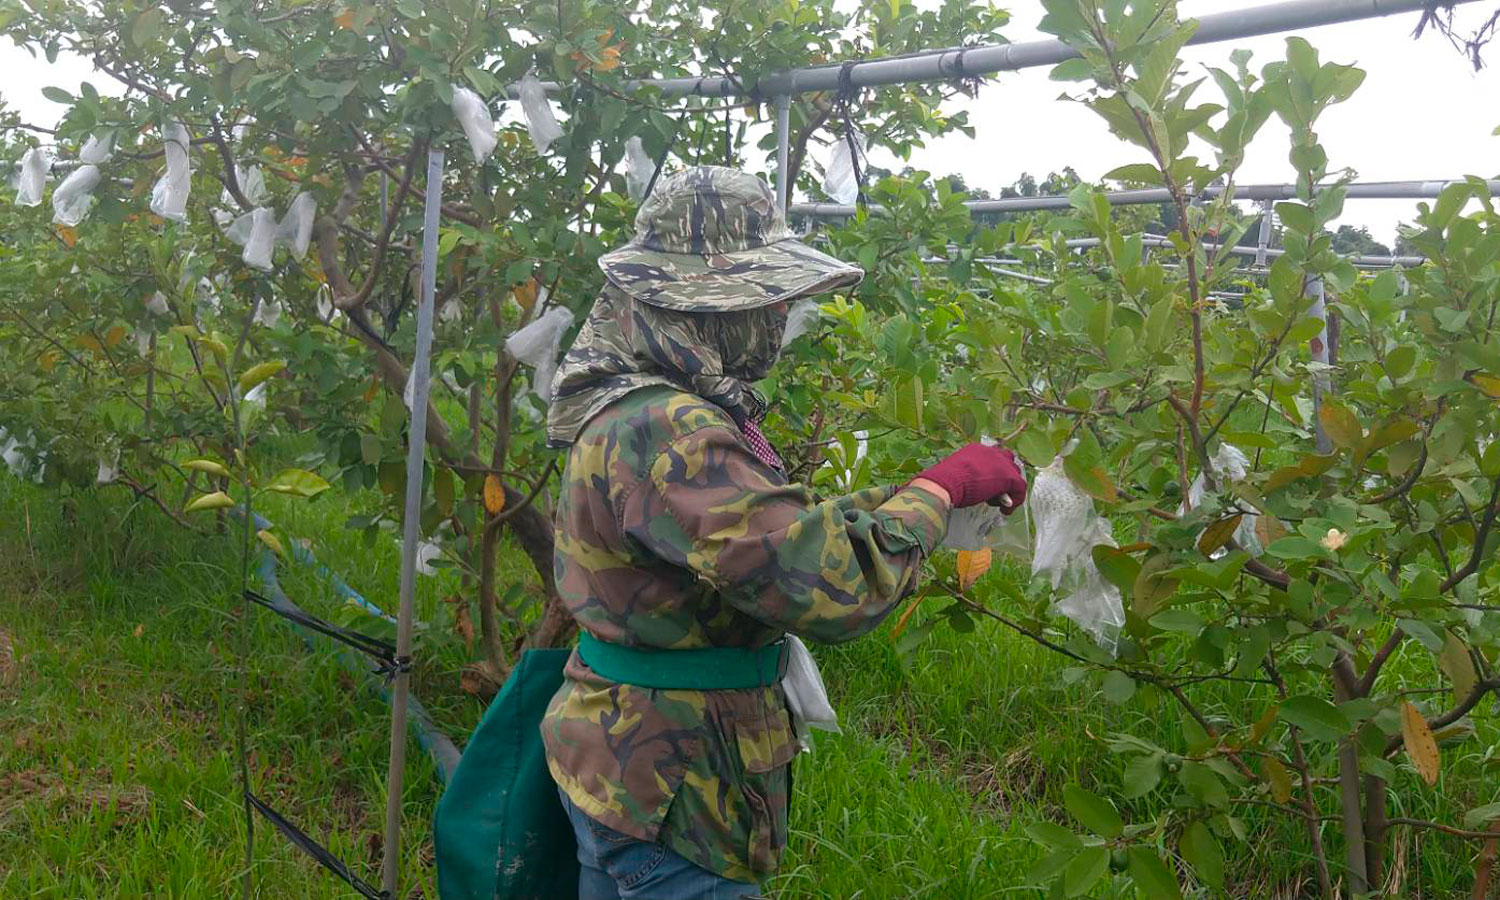 Guavaa harvesting in Yanchao. (©Urban Development Bureau, Kaohsiung City Government, Taiwan)